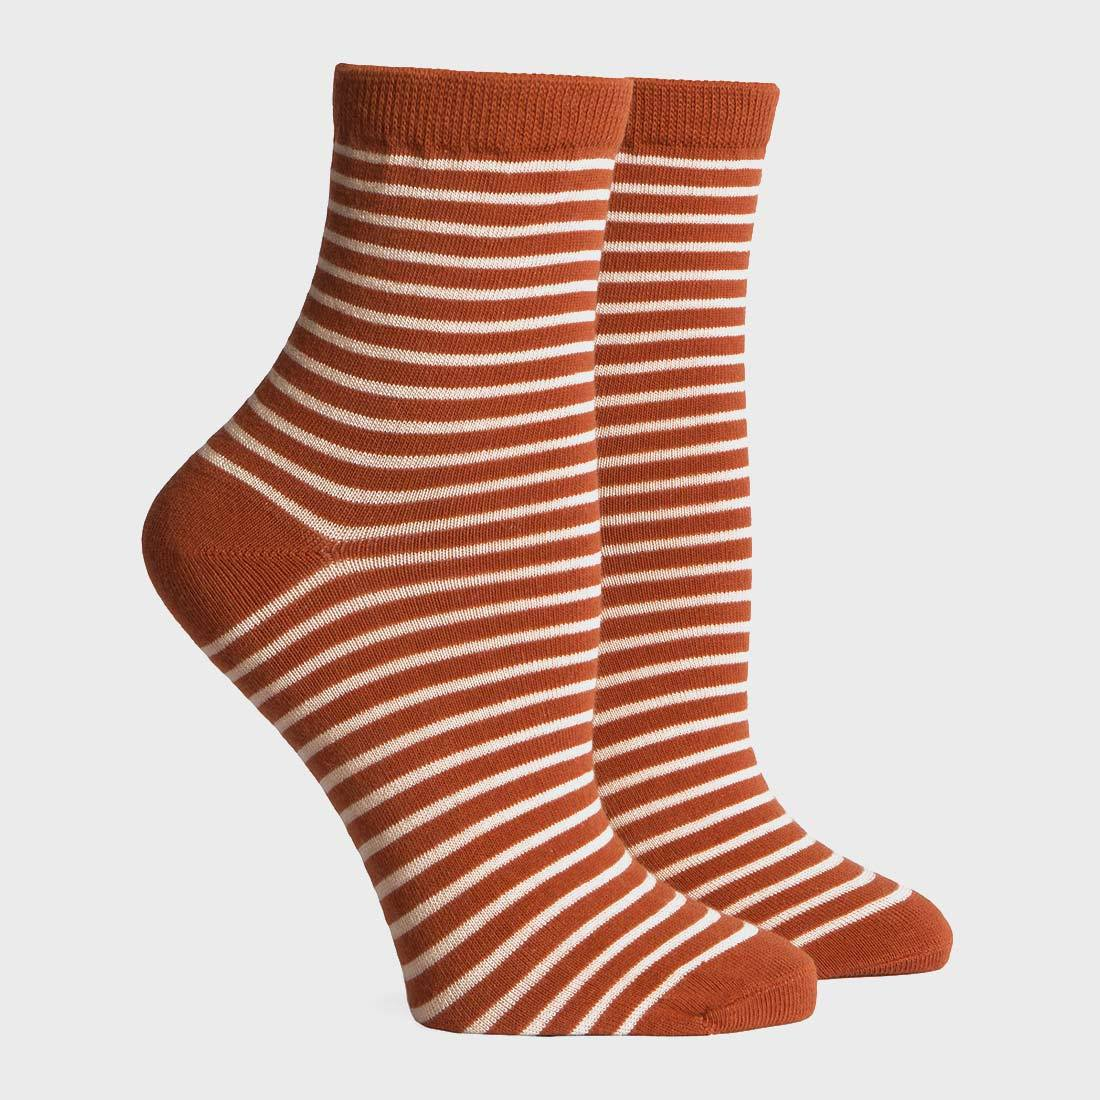 Richer Poorer Skimmer Socks Orange/Tan